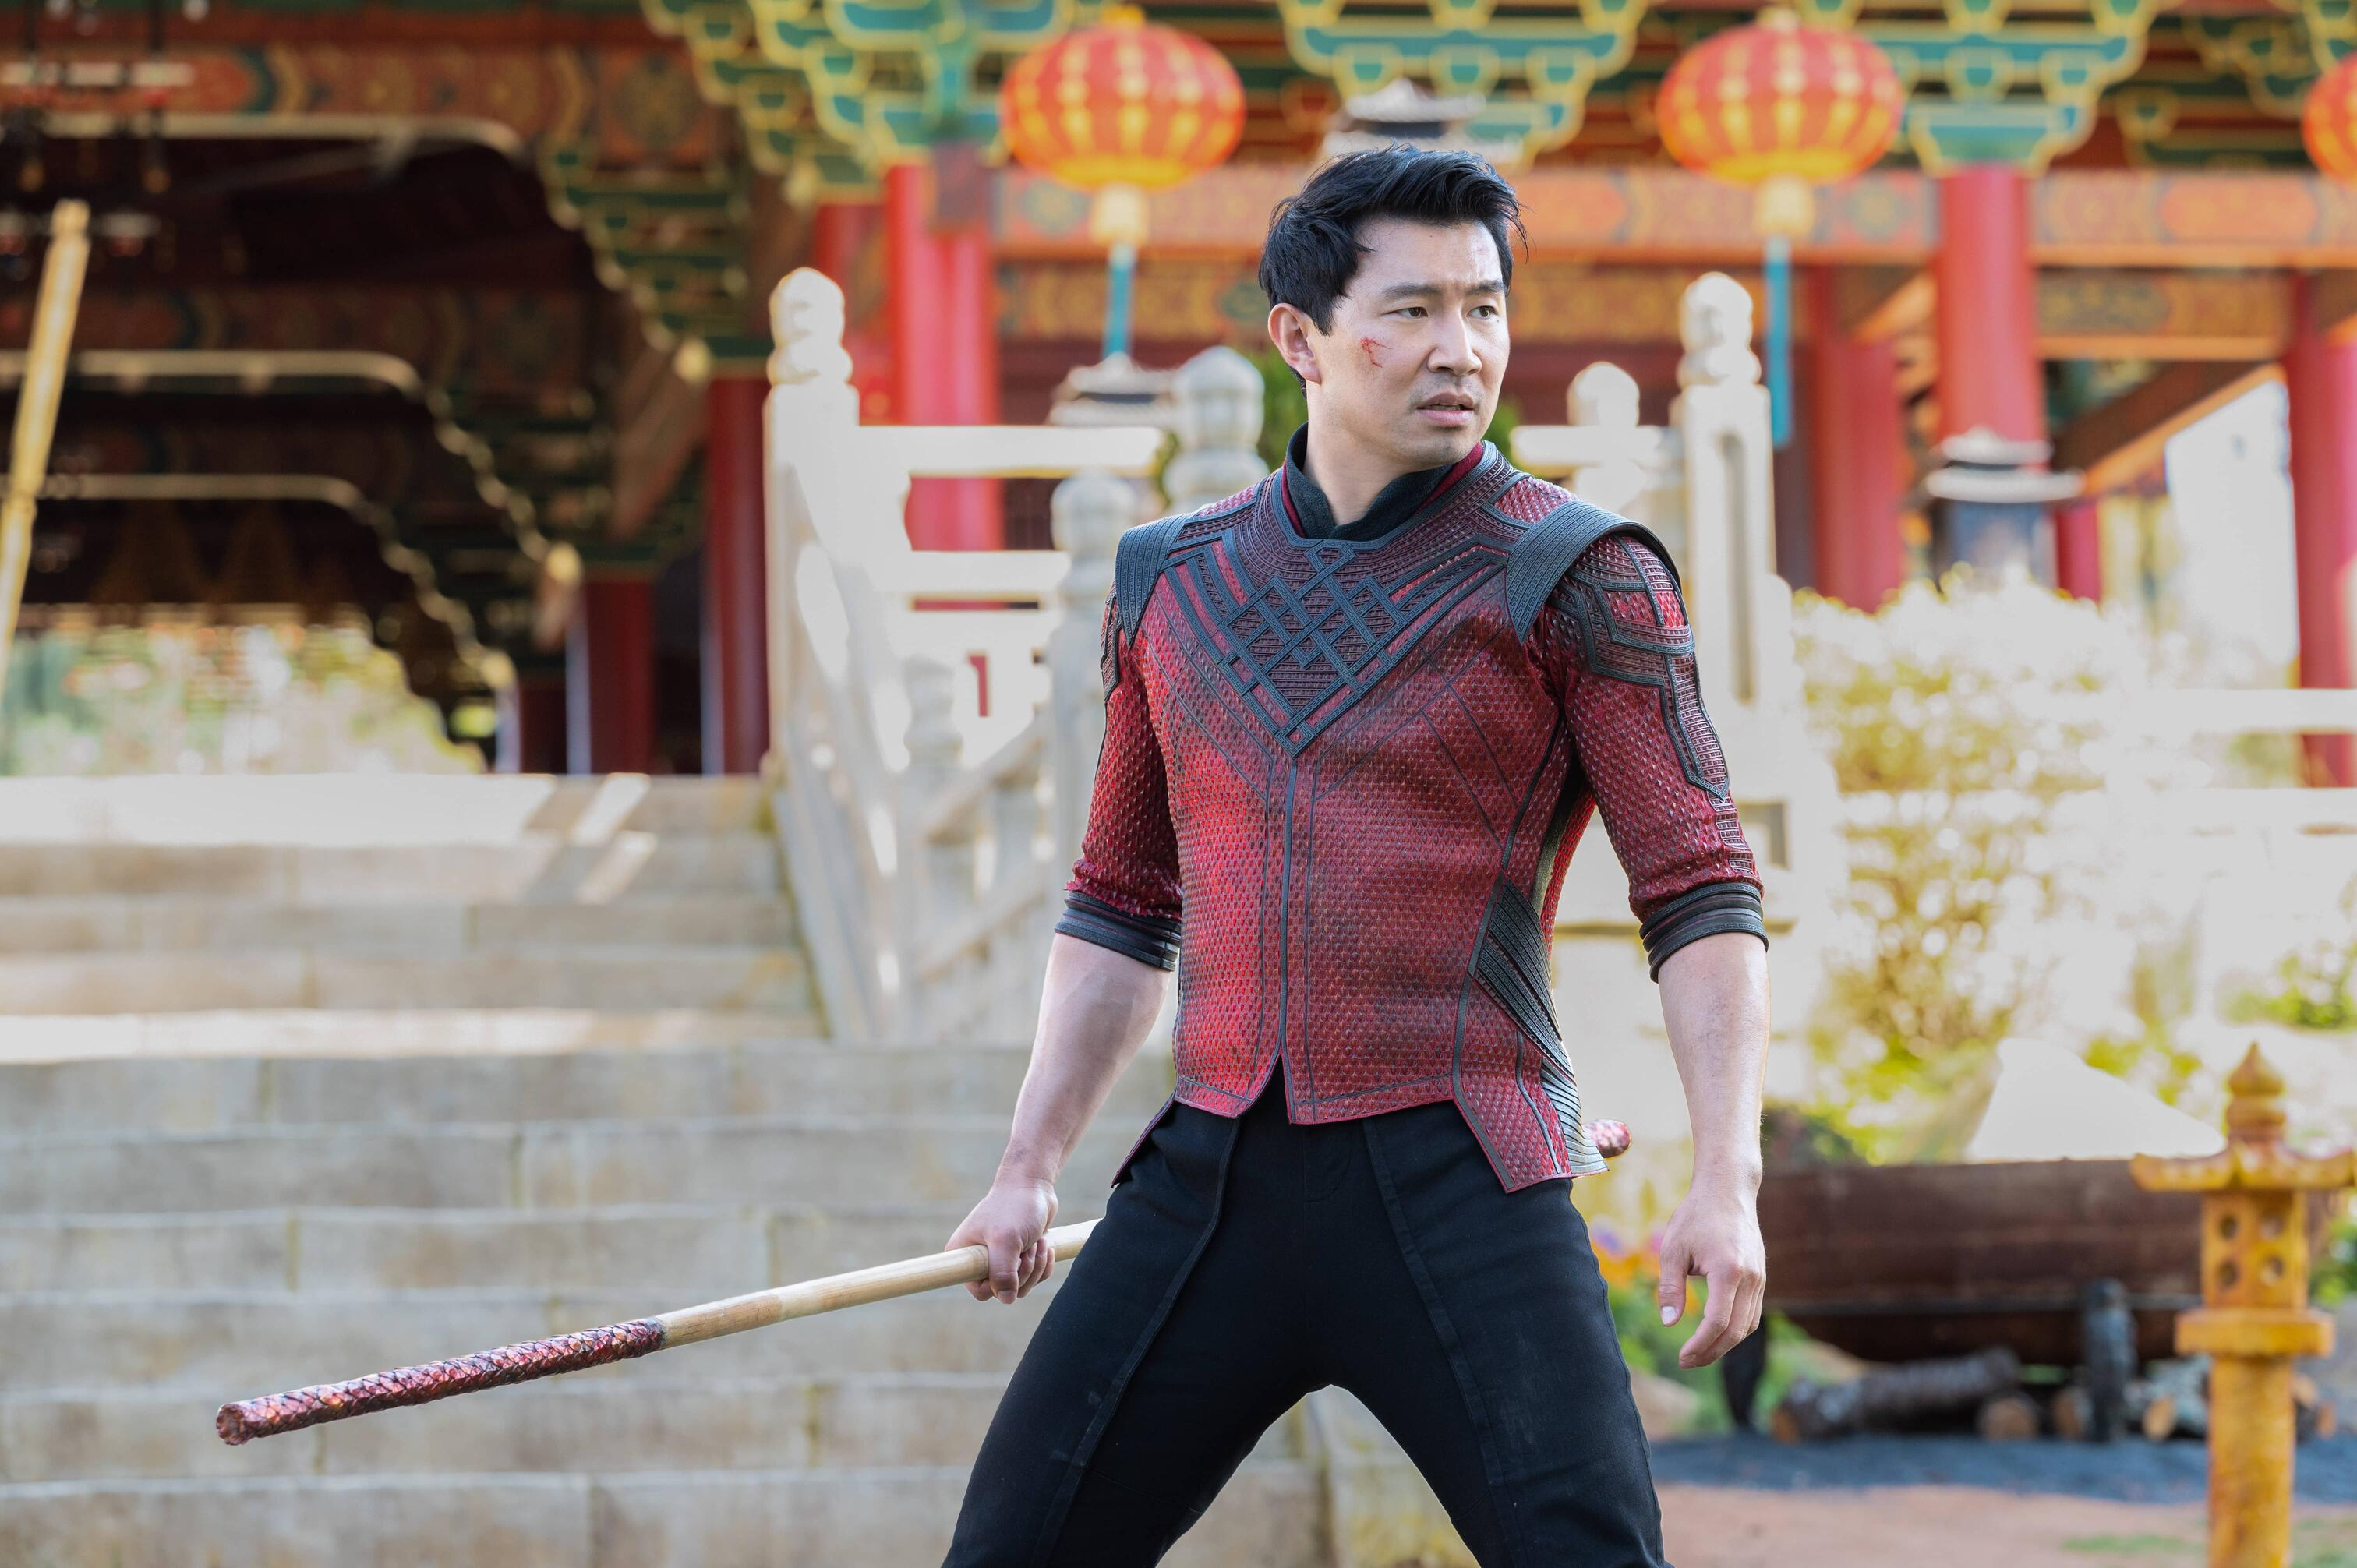 Simu Liu is Shang-Chi in Shang-Chi and the Legend of the Ten Rings